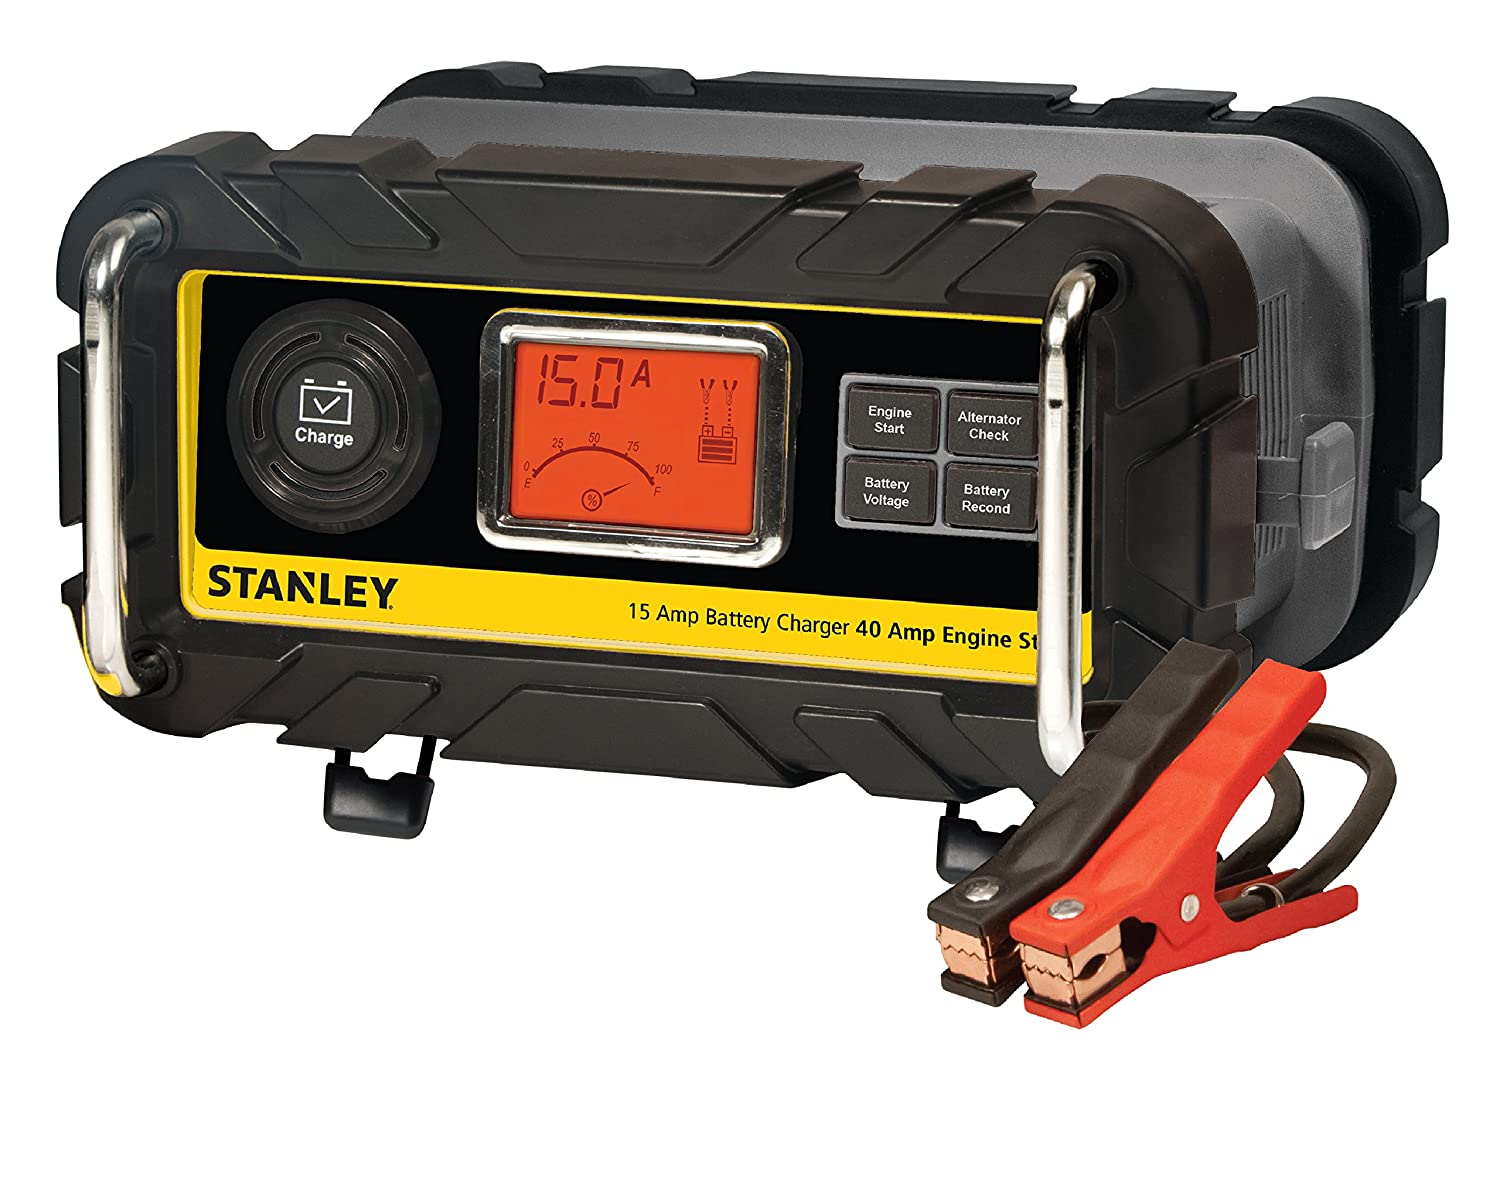 Stanley Bc15bs 15 Amp Bench Battery Charger With 40 Walker Mower Wiring Diagram For Charging Unit Engine Start And Alternator Check Automotive